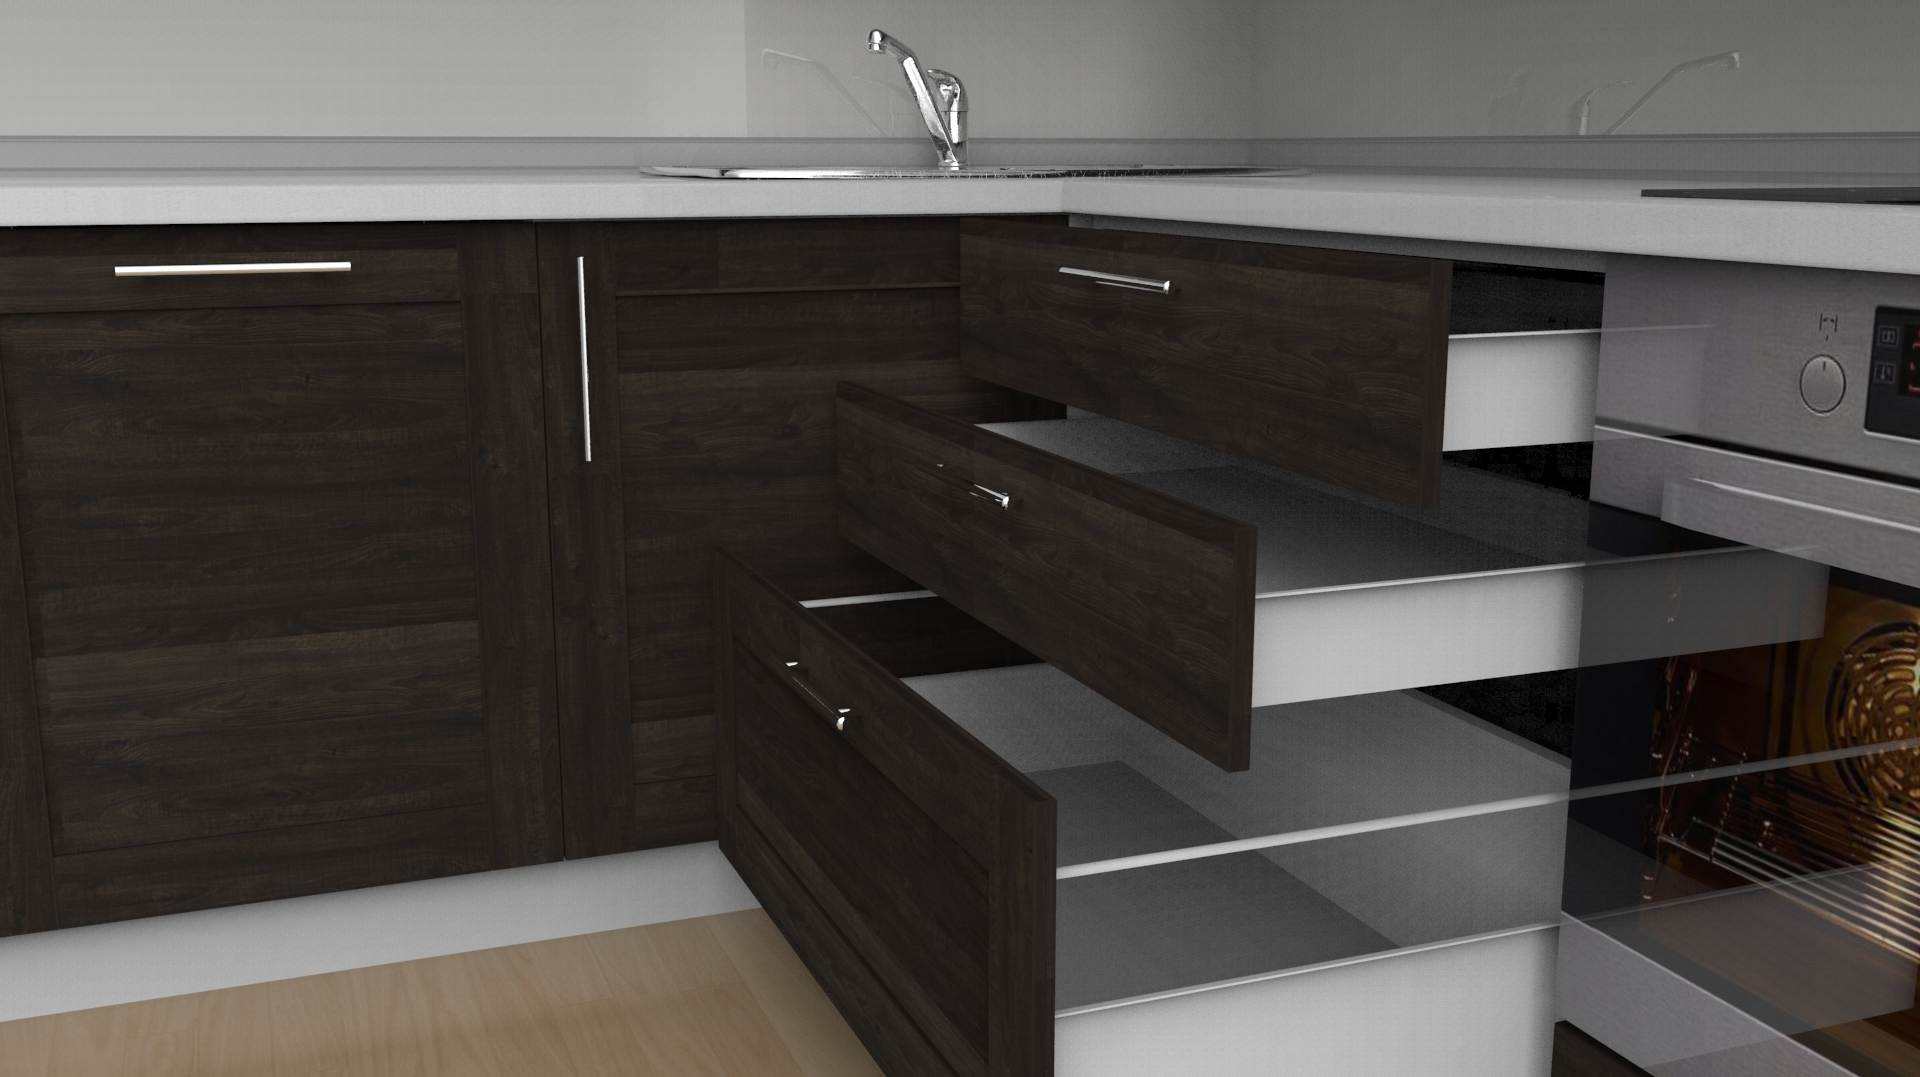 Example Of Kitchen Drawer Design By Prodboard 3D Design Software.